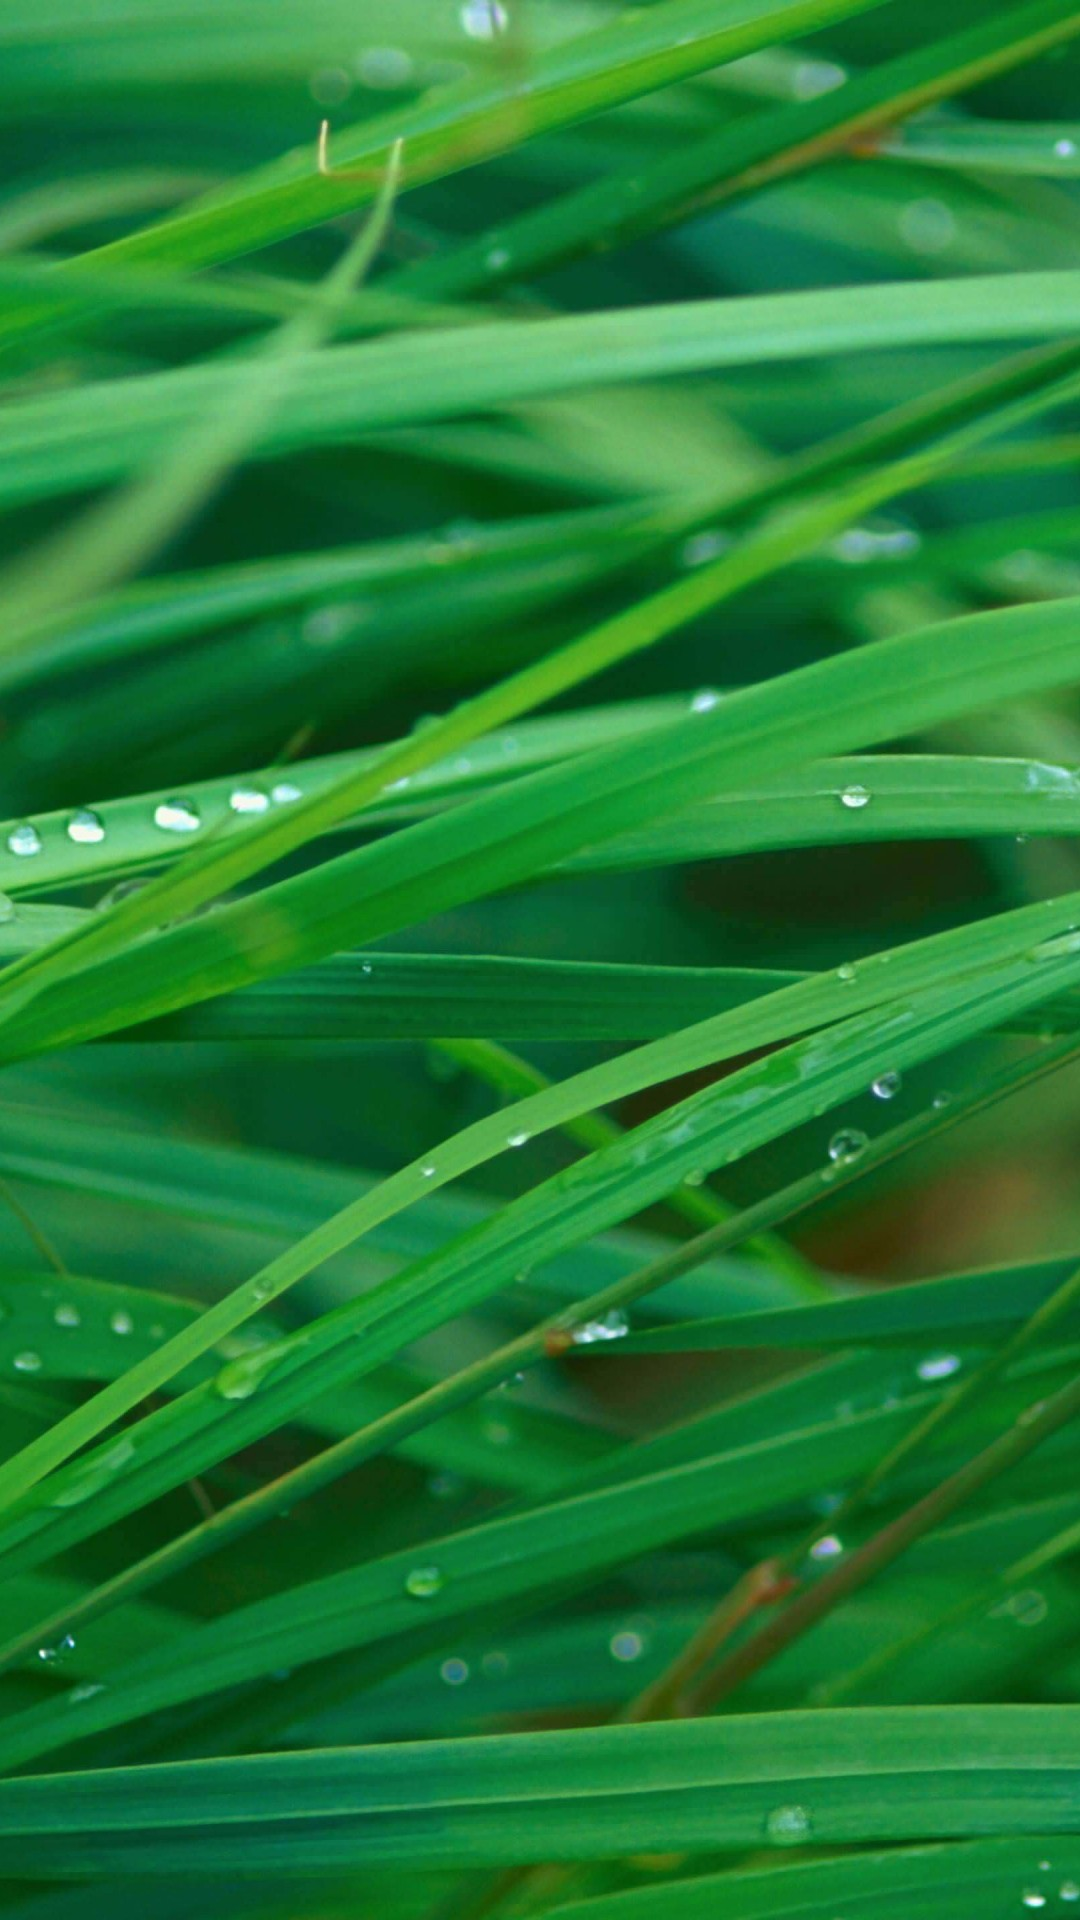 Green Blades Of Grass Wallpaper for Google Nexus 5